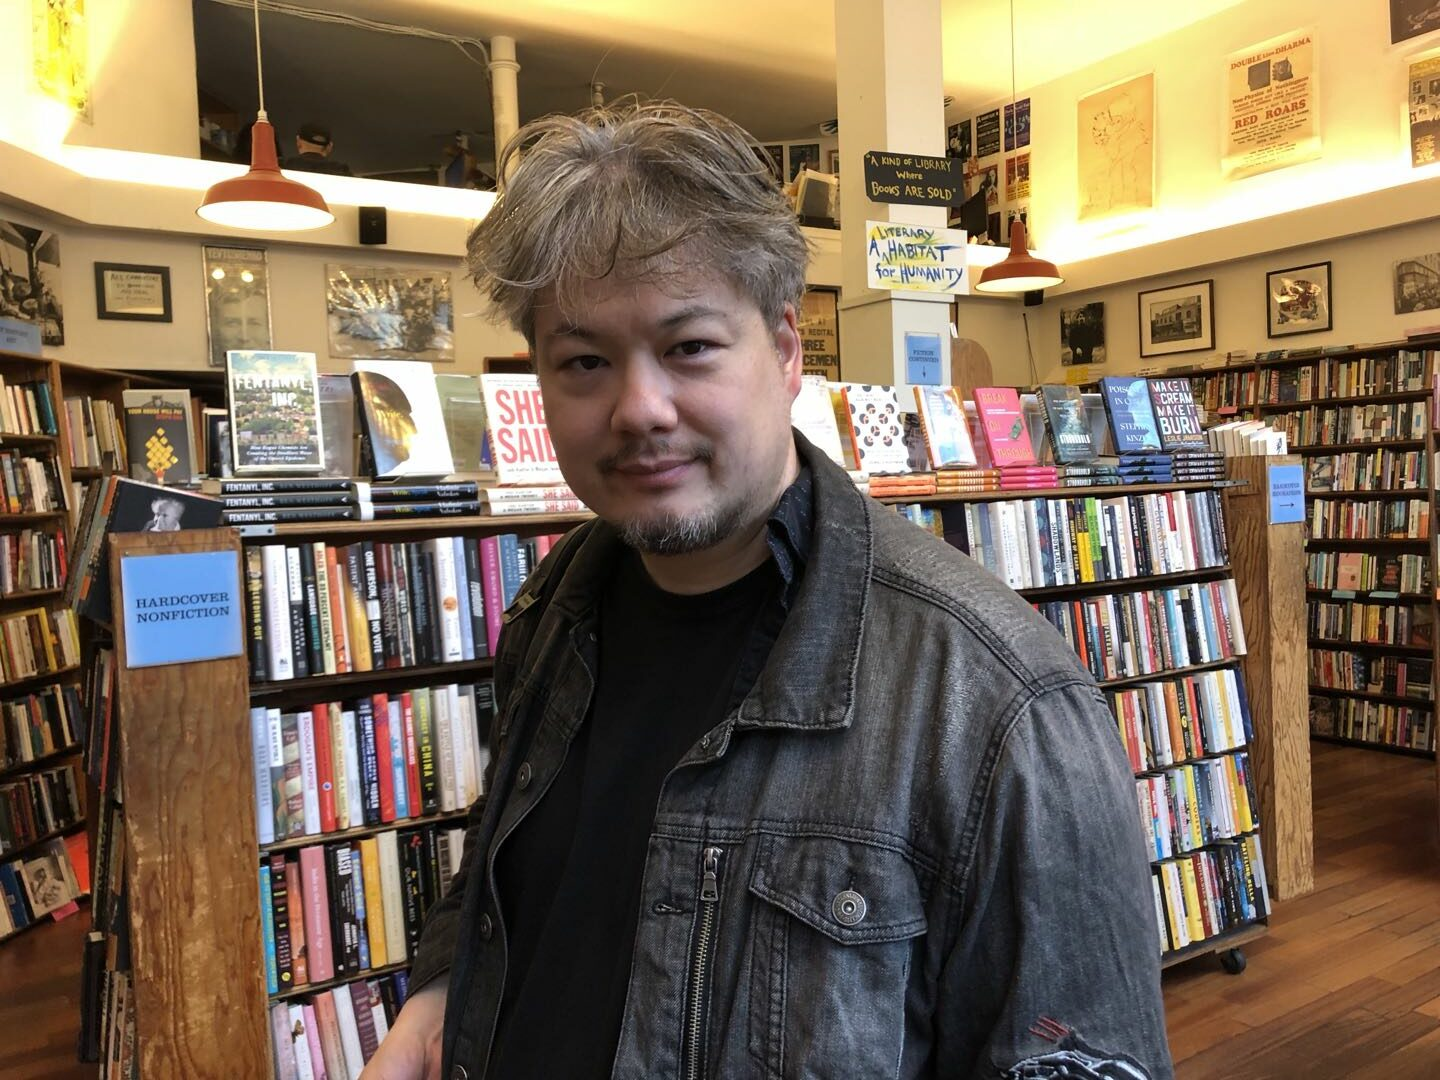 A man with dark graying hair and a small goatee beard standing in front of a full bookshelf in a bookstore